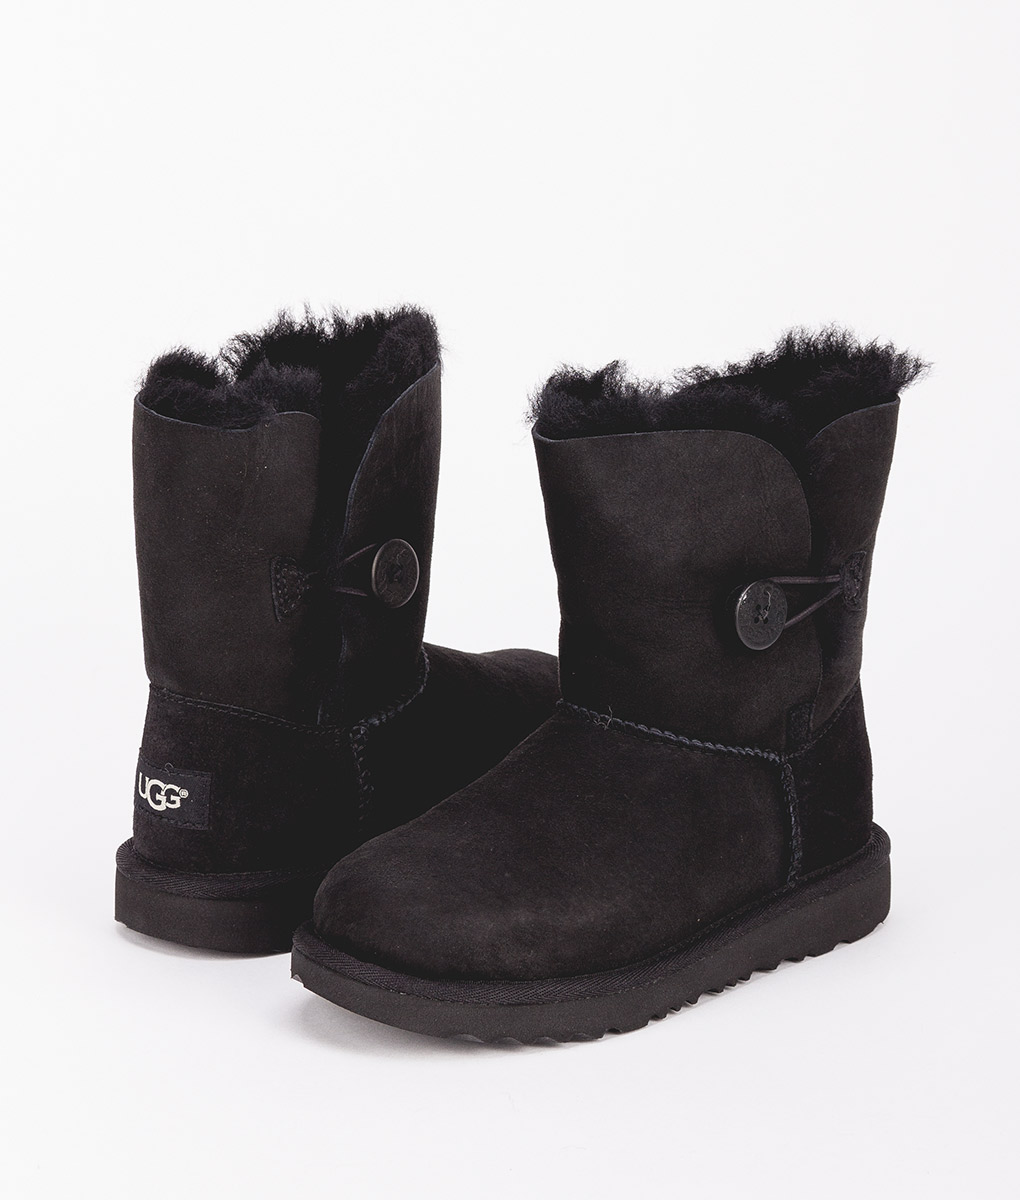 UGG Kids Ankle Boots 1017400K BAILEY BUTTON II, Black 1